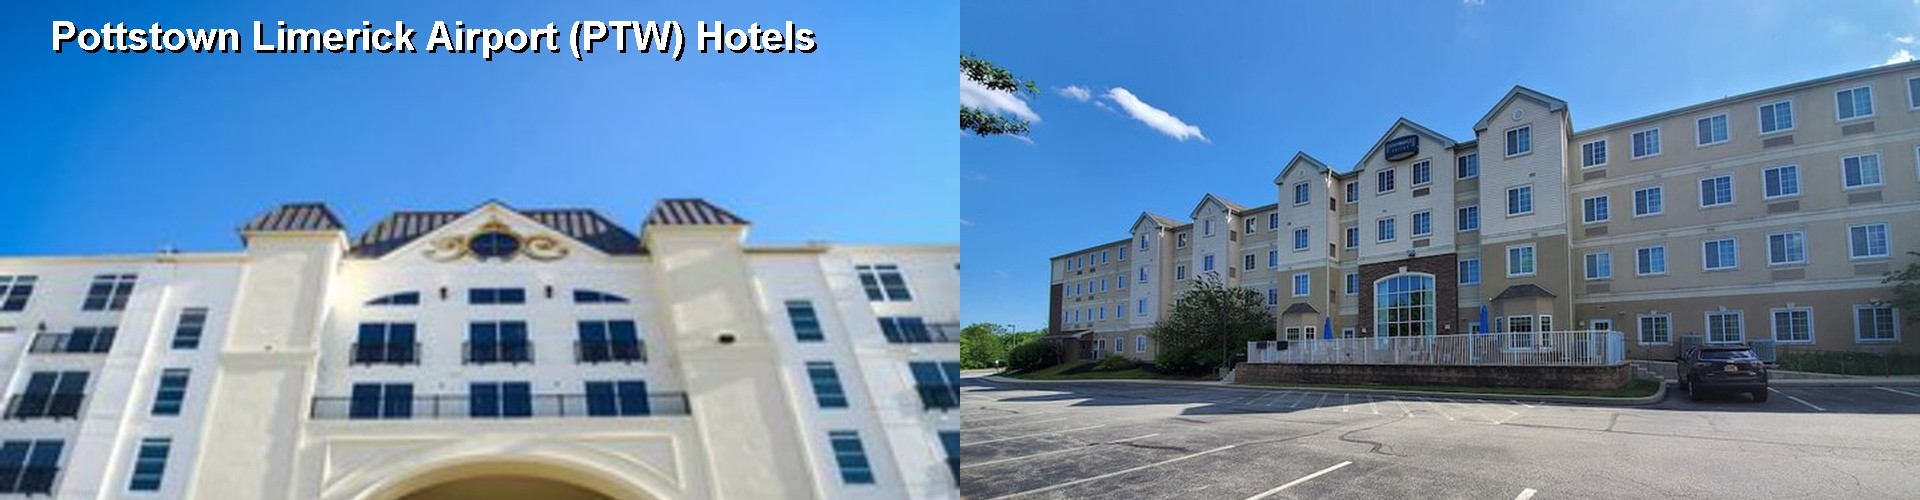 5 Best Hotels near Pottstown Limerick Airport (PTW)